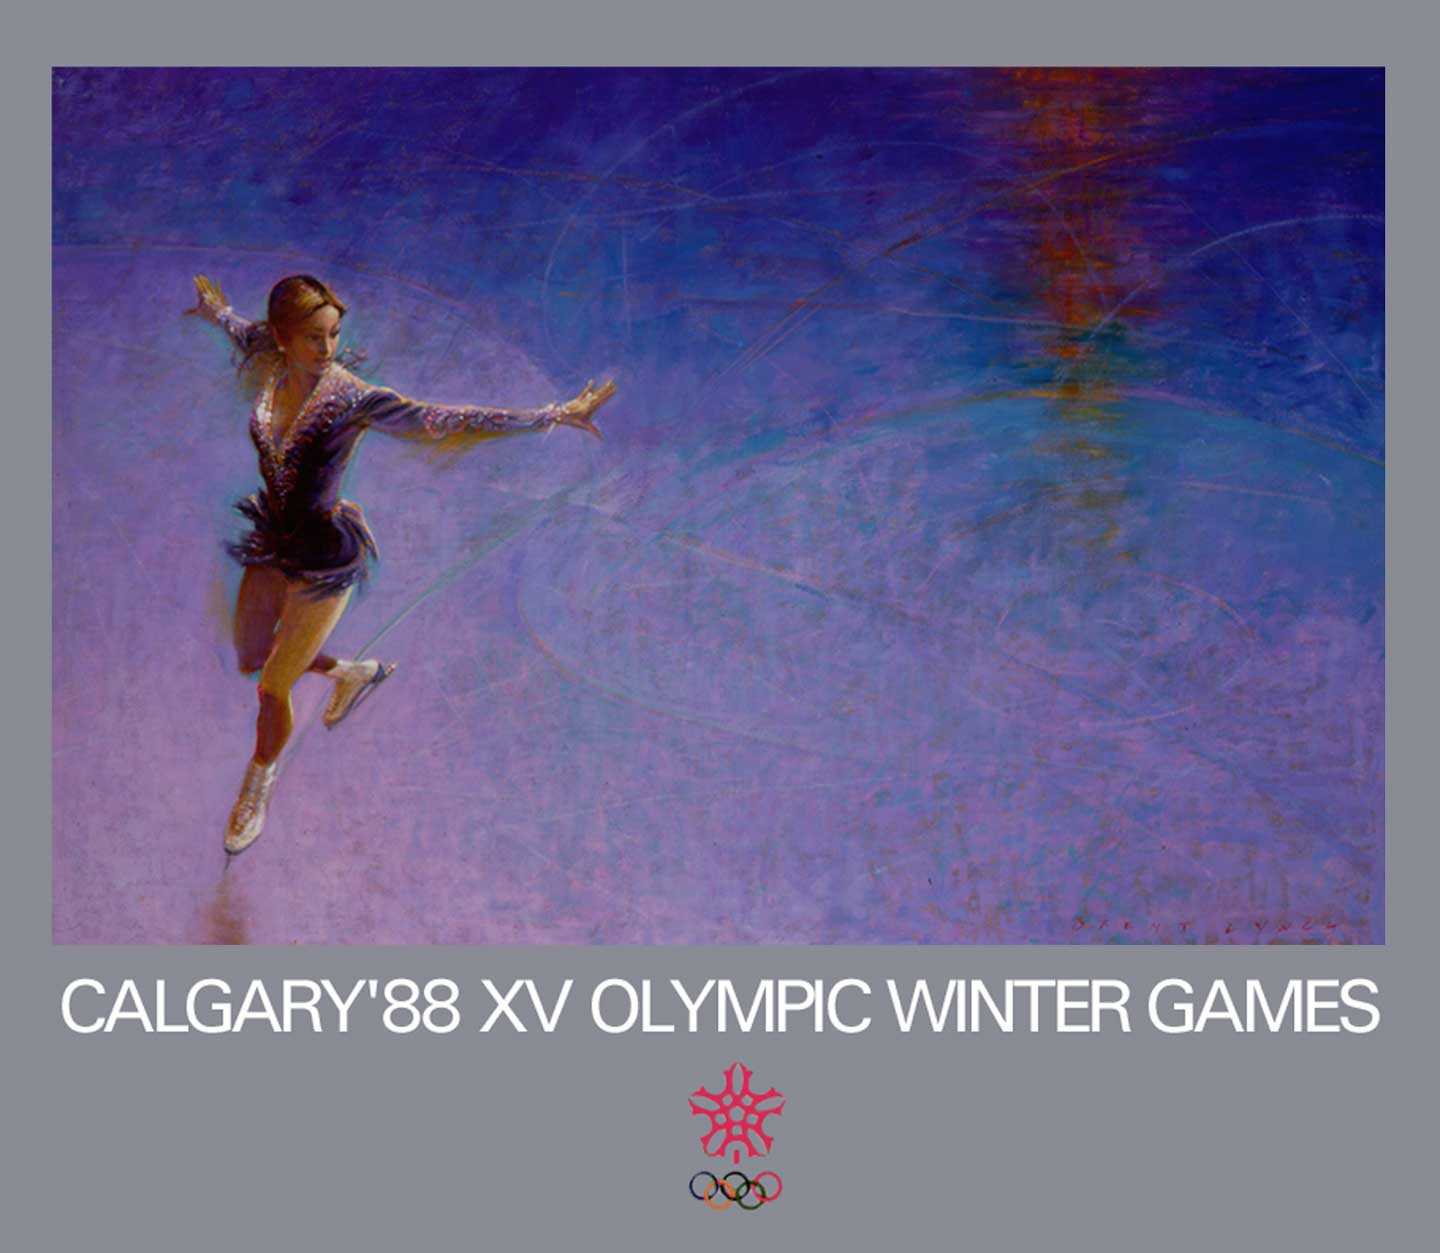 1988 Calgary Olympics official poster art